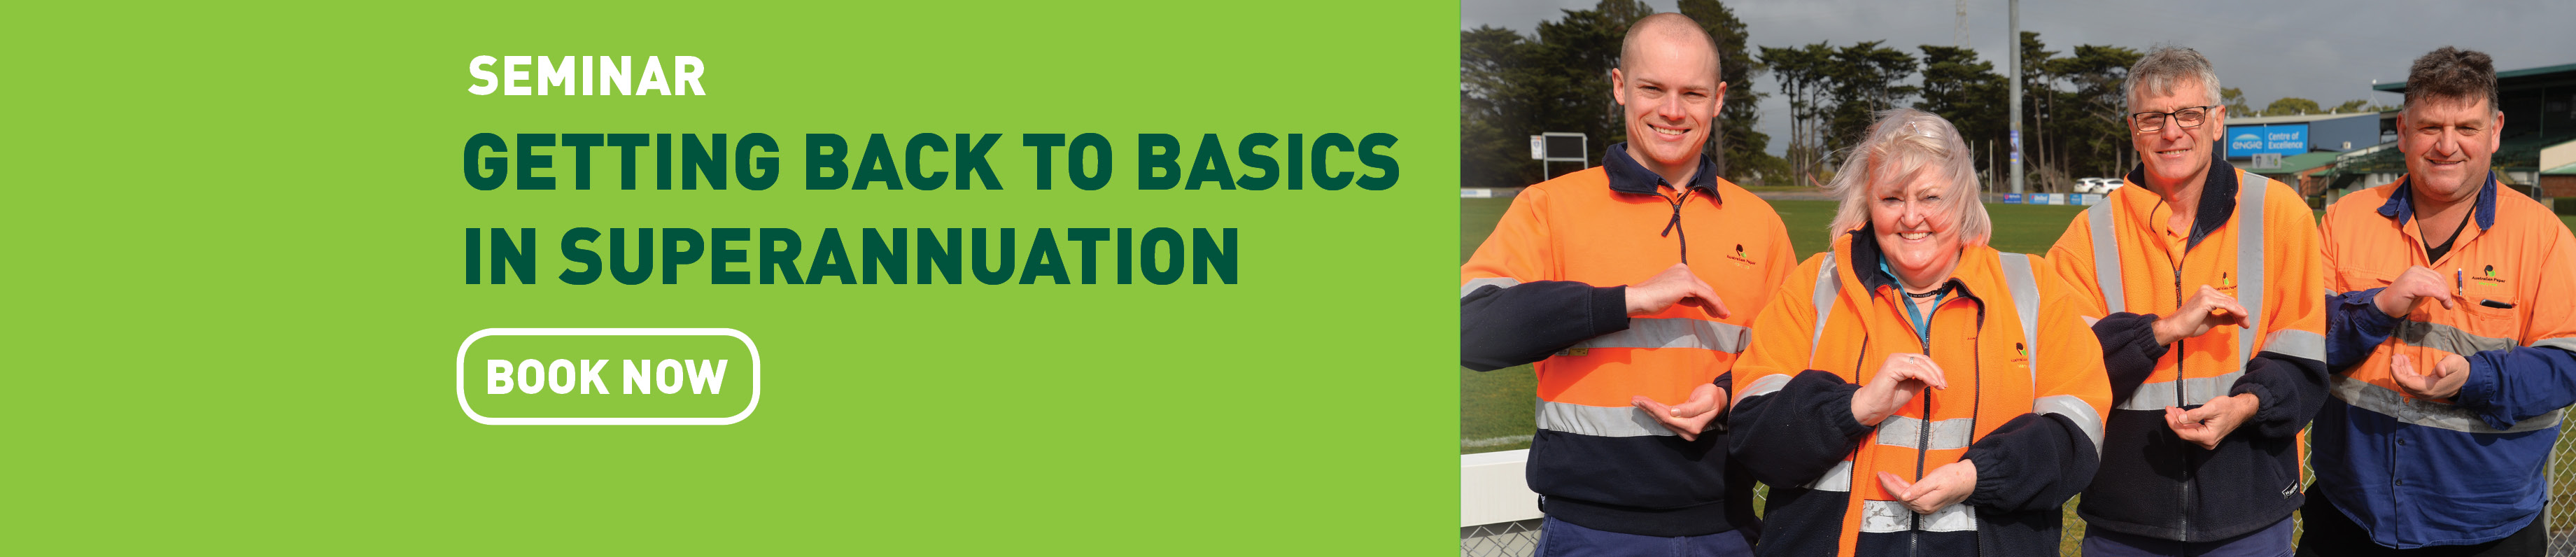 Getting back to basics in Superannuation seminar - Traralgon, Victoria